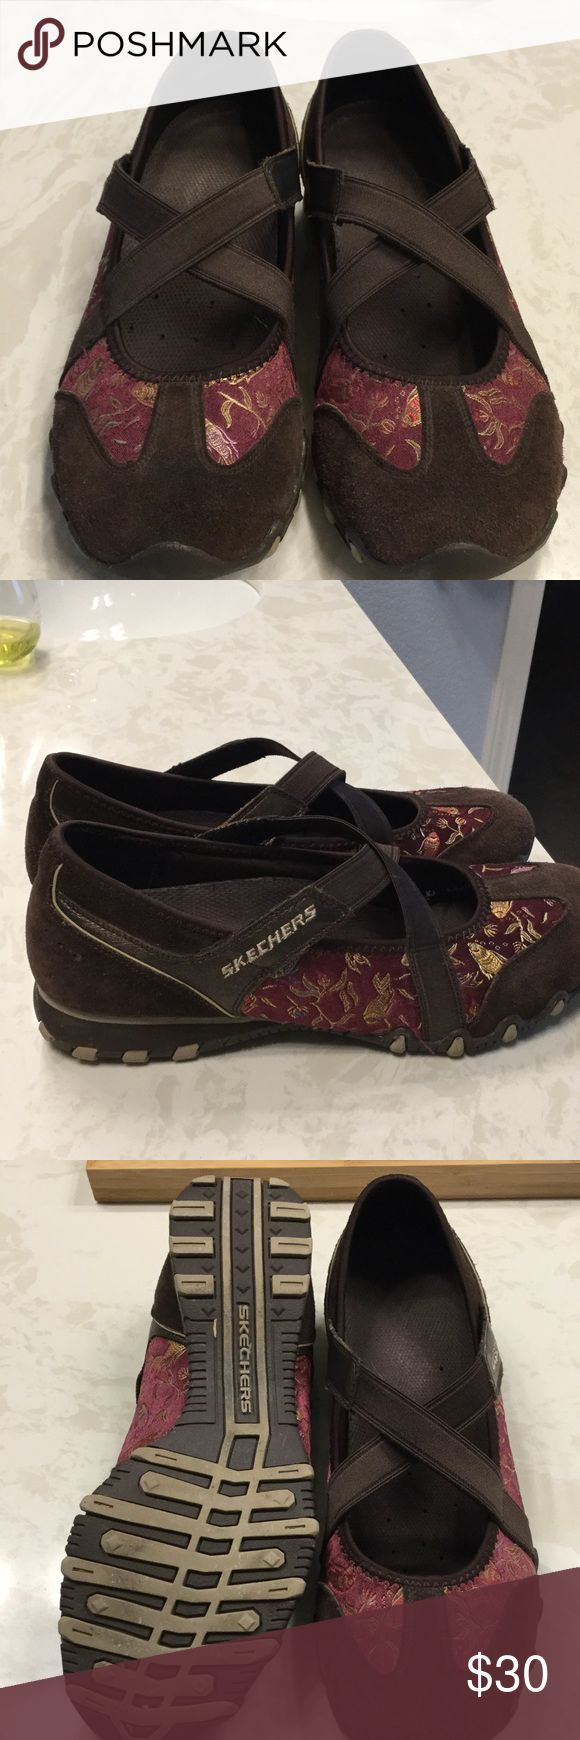 Sale! Skechers Brown and Red Shoes Skechers dark brown leather with red koi embroidered shoes. Koi is stitched in pretty gold stitching. Size 8.5. Some minor wear but in great shape. Skechers Shoes Flats & Loafers